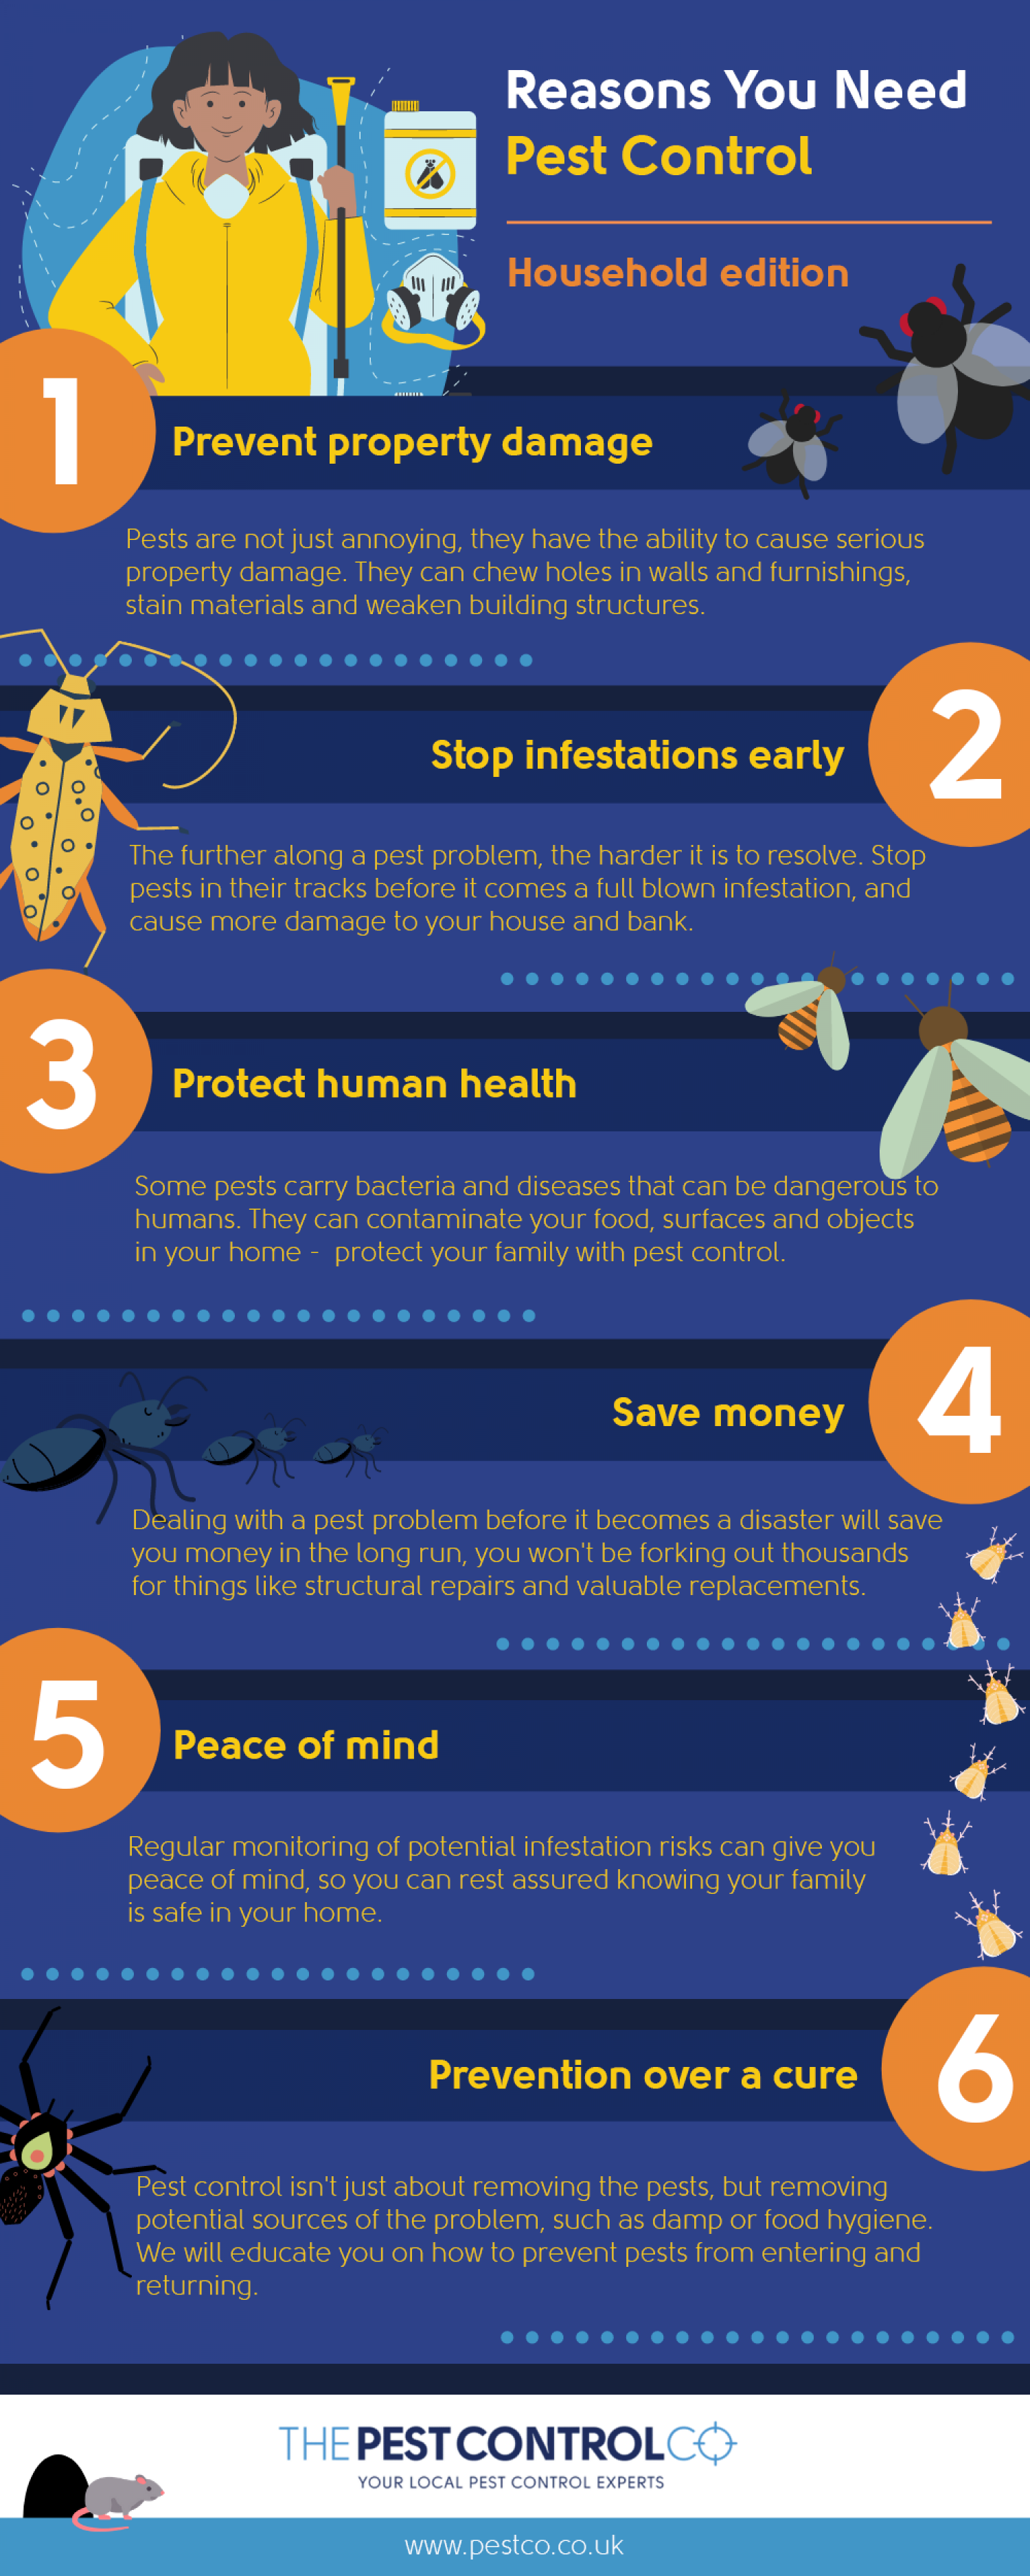 Reasons you need pest control - residential edition Infographic